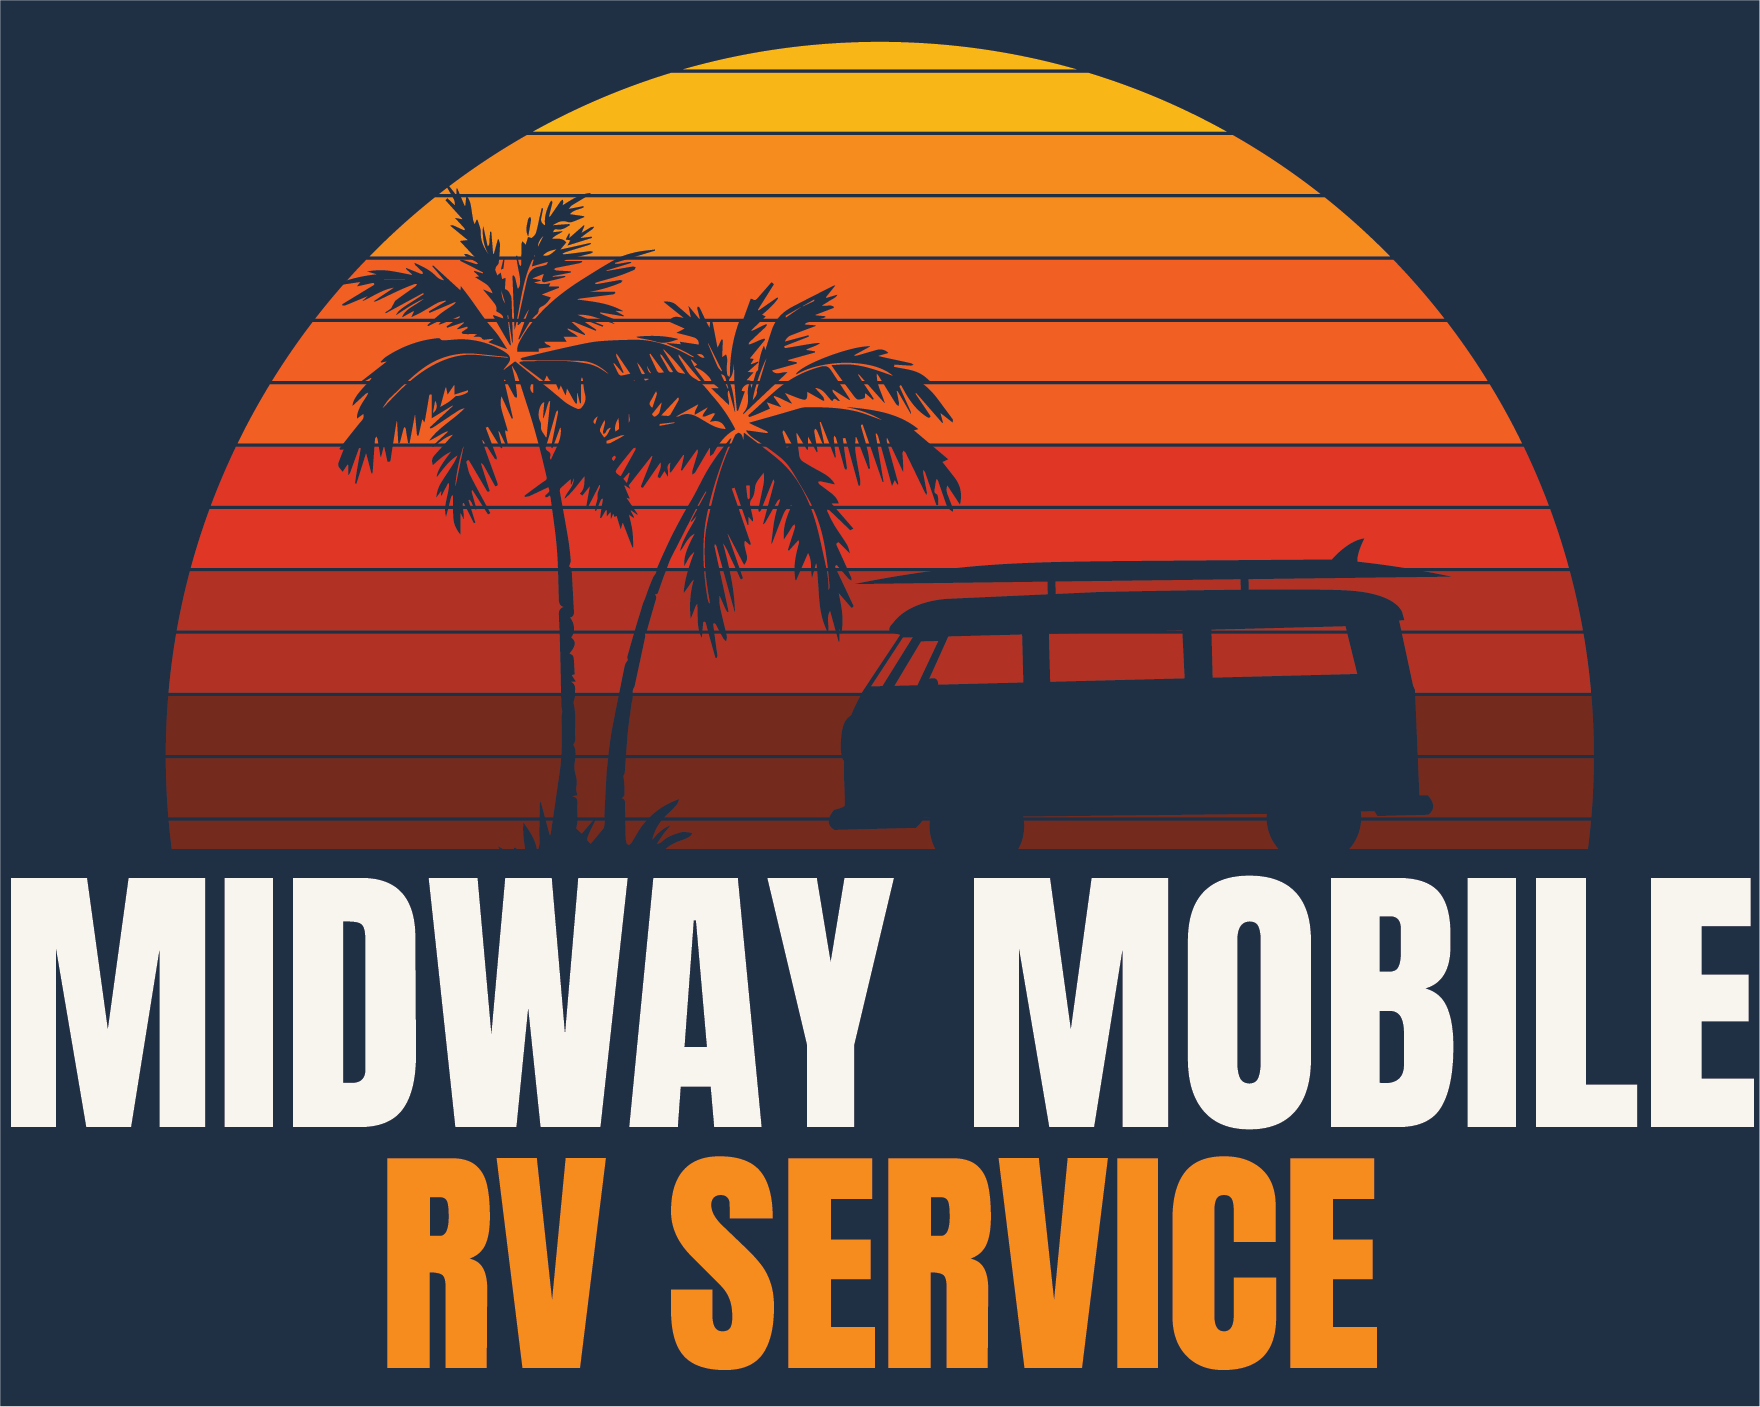 Midway Mobile RV Service